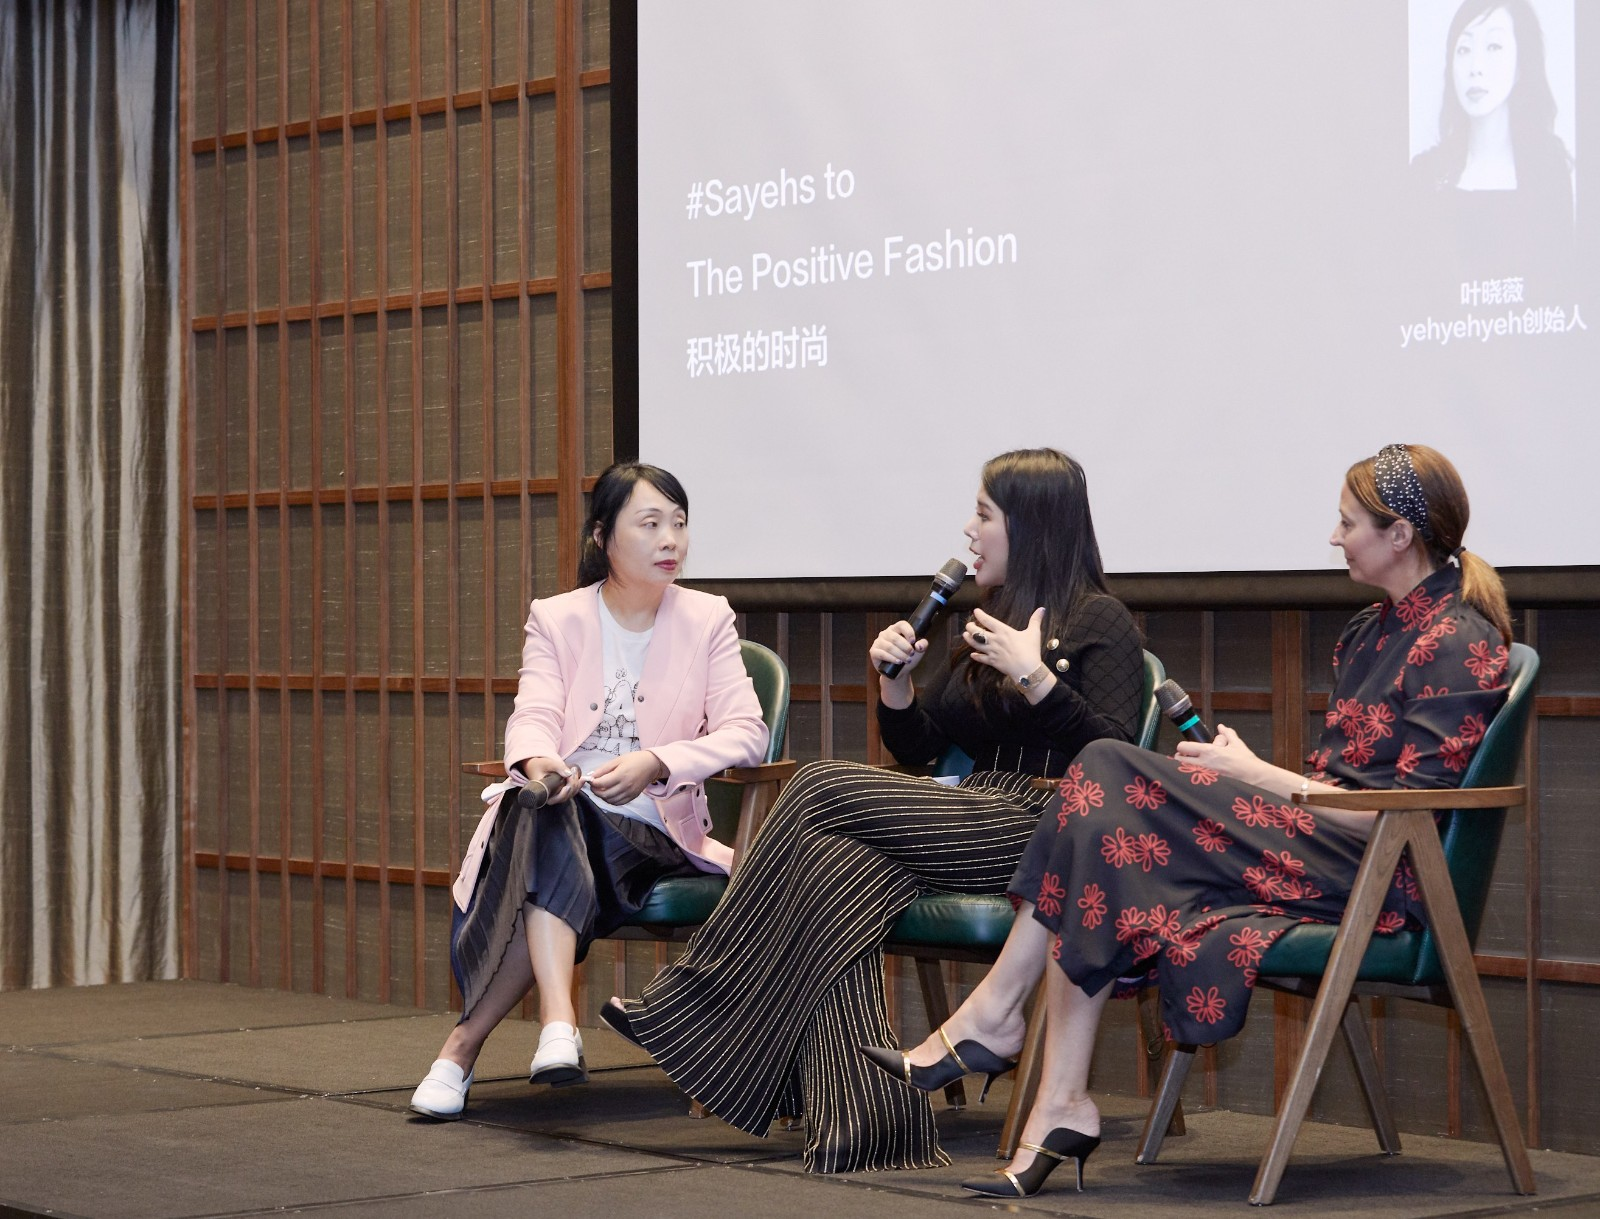 Shaway Yeh hosting a panel discussion with Wendy Yu and Caroline Rush at Shan Future Forum during Shanghai Fashion Week.